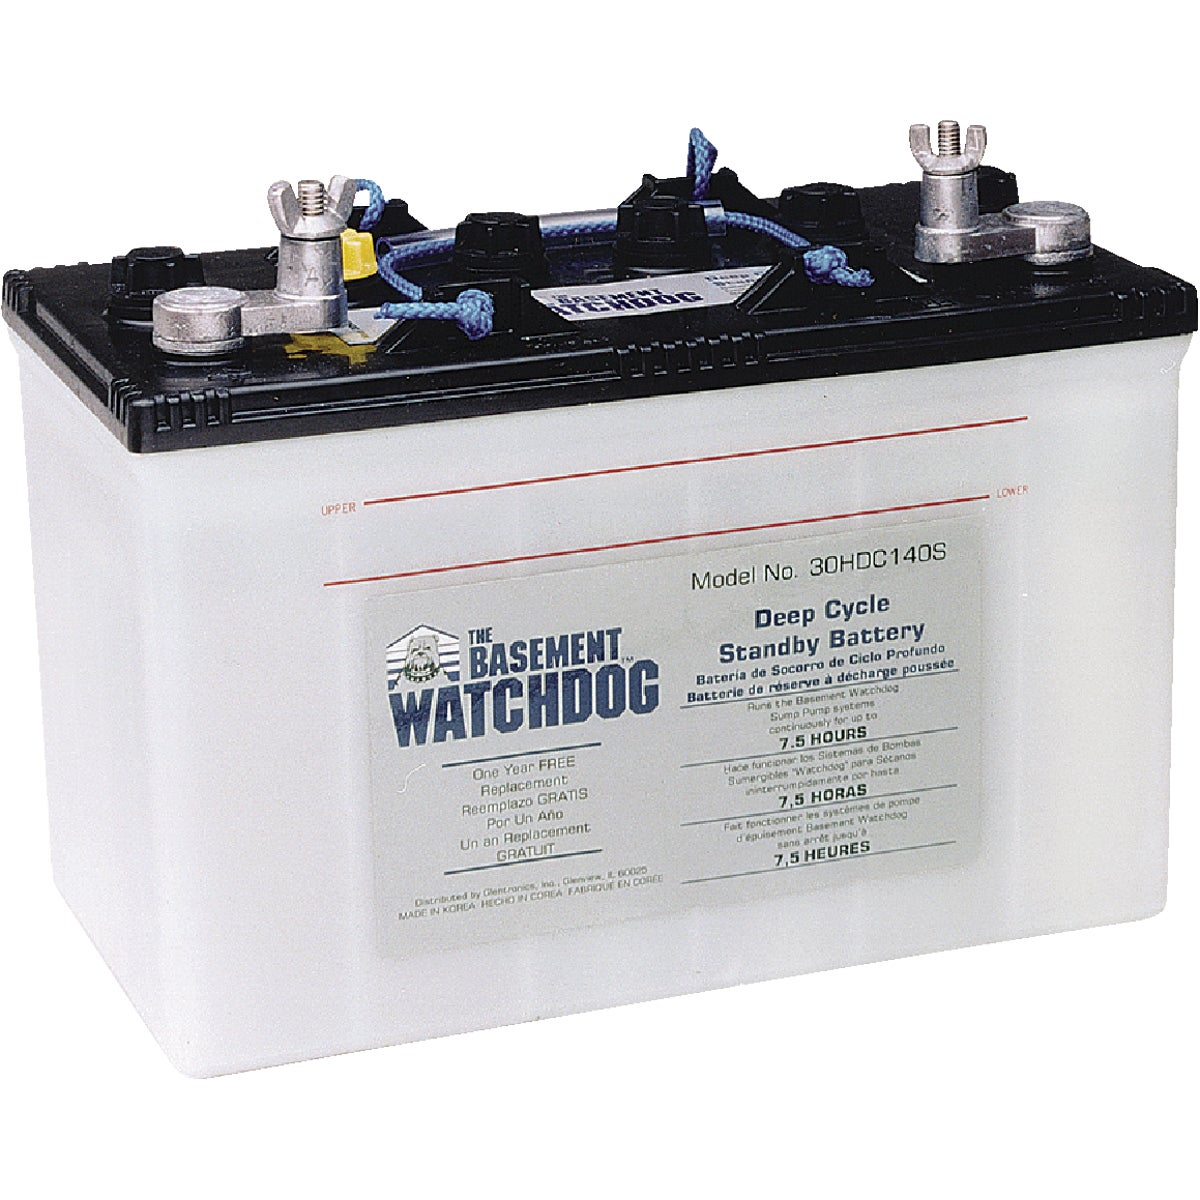 7.5 HOUR PUMP BATTERY - 30HDC140S by Glentronics Inc